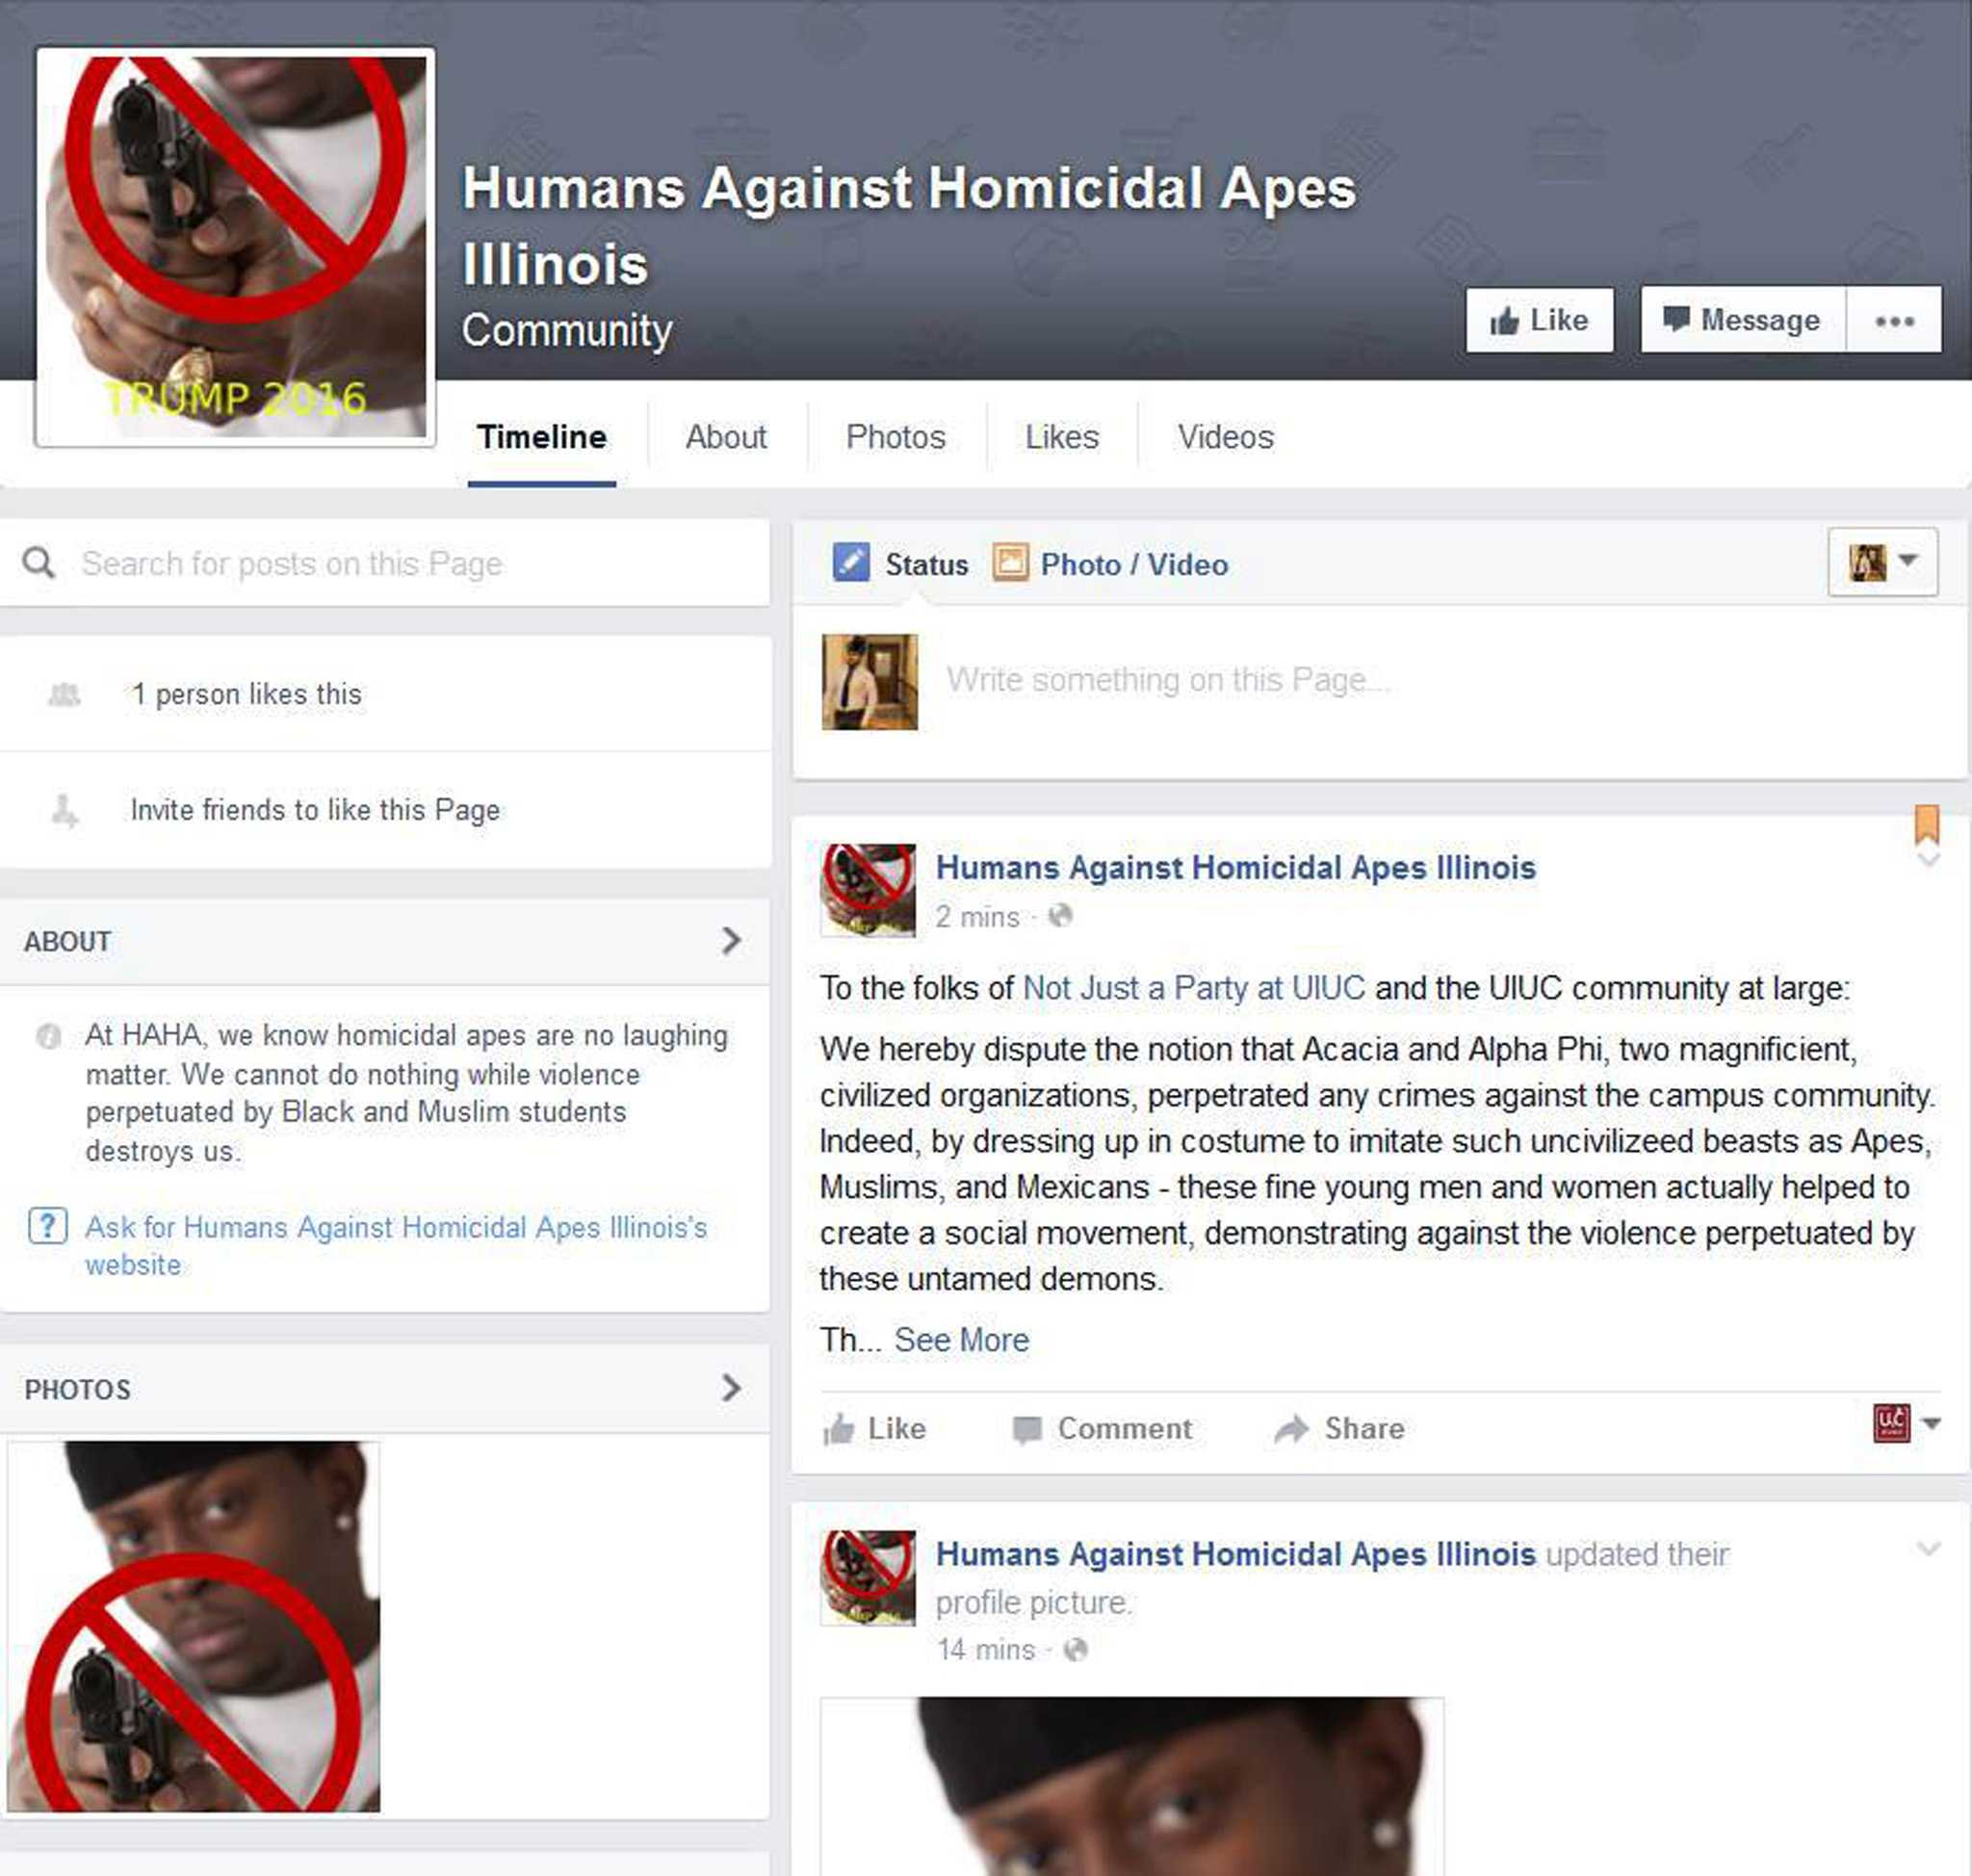 %3Cp%3EAn+alleged+racist+photo+and+subsequent+Facebook+group+sparked+condemnation+from+student+activist+groups.%26nbsp%3B%3C%2Fp%3E